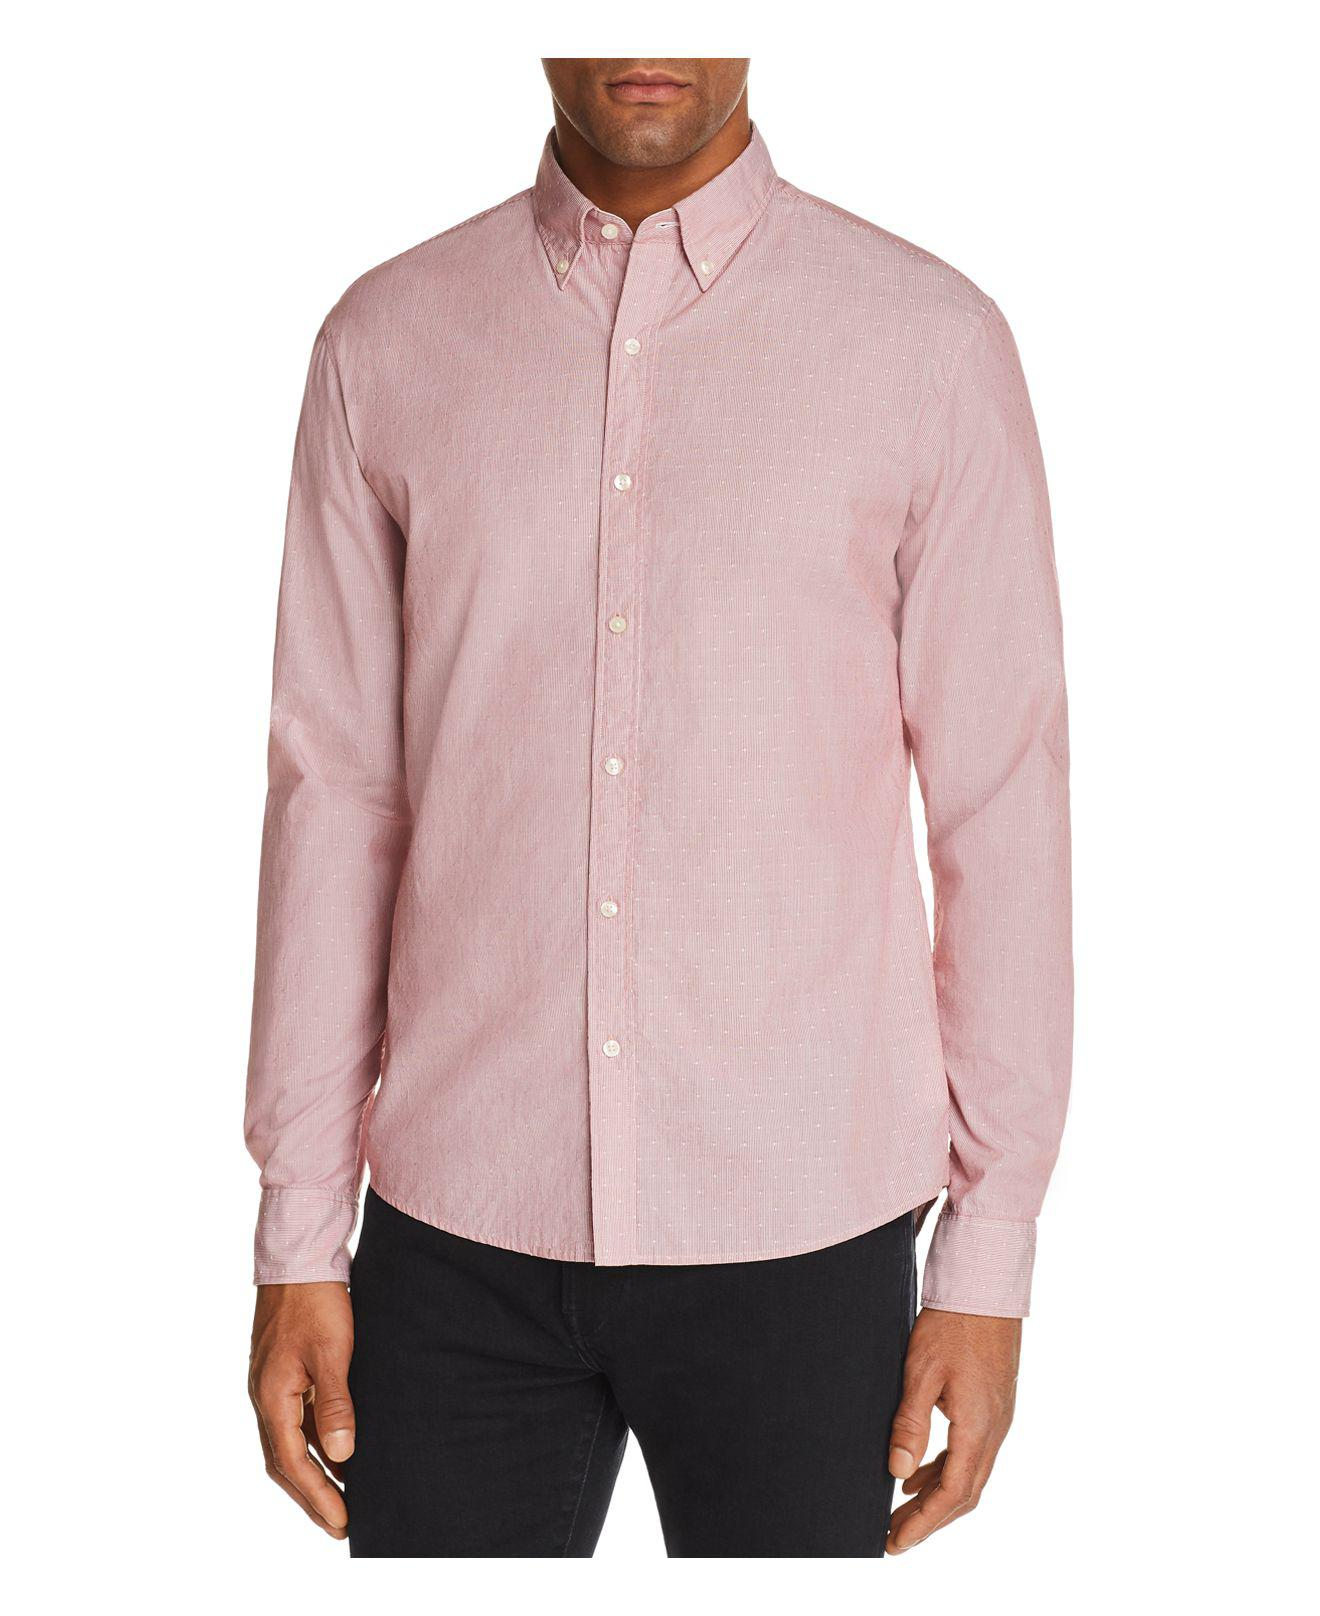 Michael kors dobby striped slim fit long sleeve button for Michael kors mens shirts sale